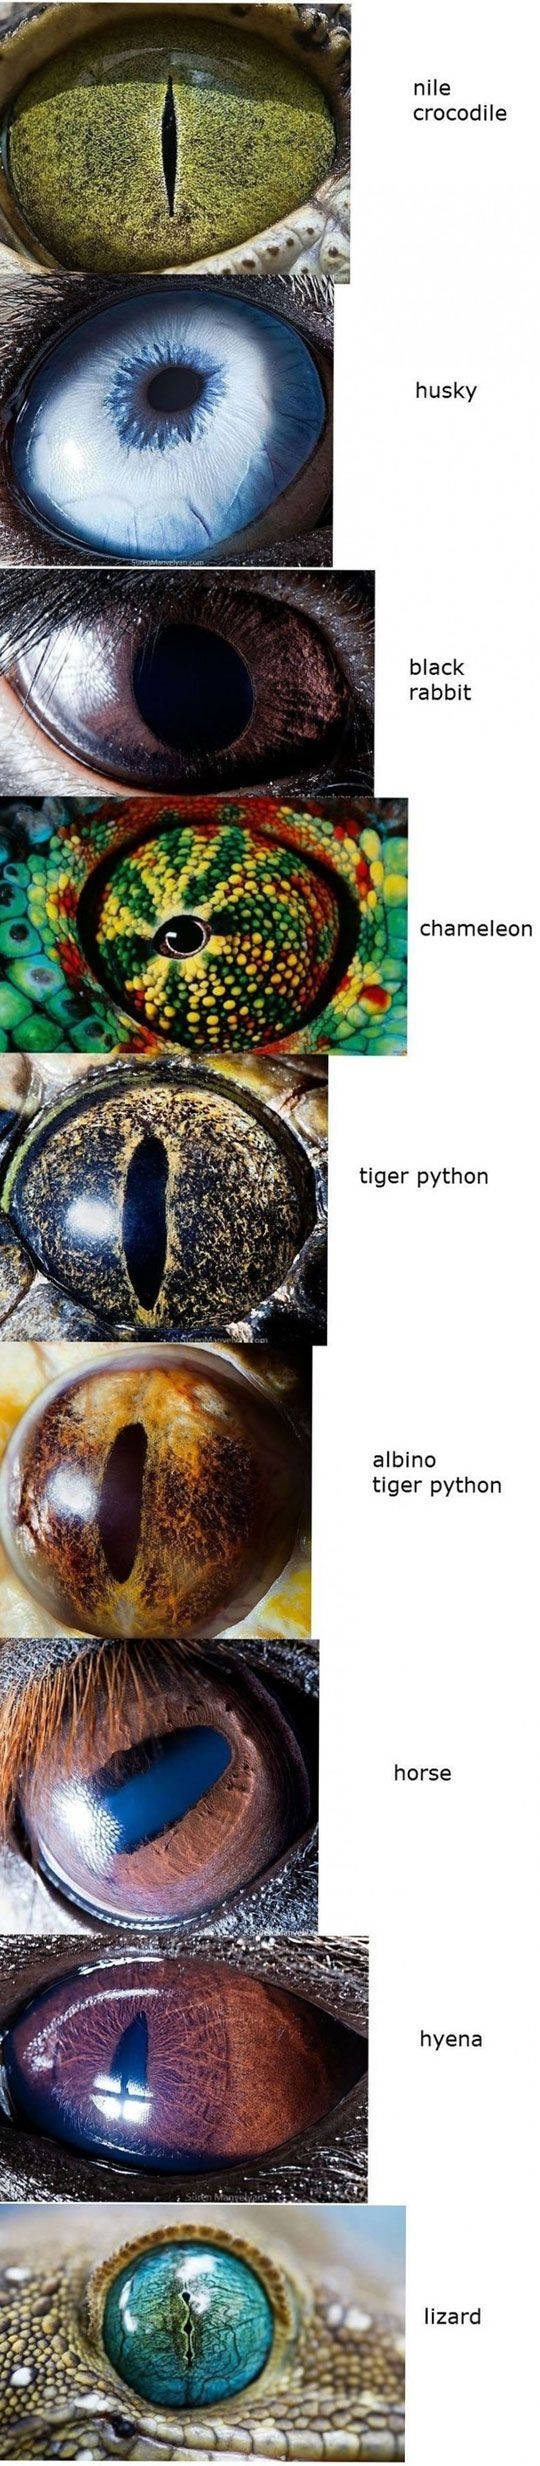 """Animal eyes....talking about eyes, there's a  Good point in the February Awake 2013 magazine, """"A designer of robots explains his faith""""."""